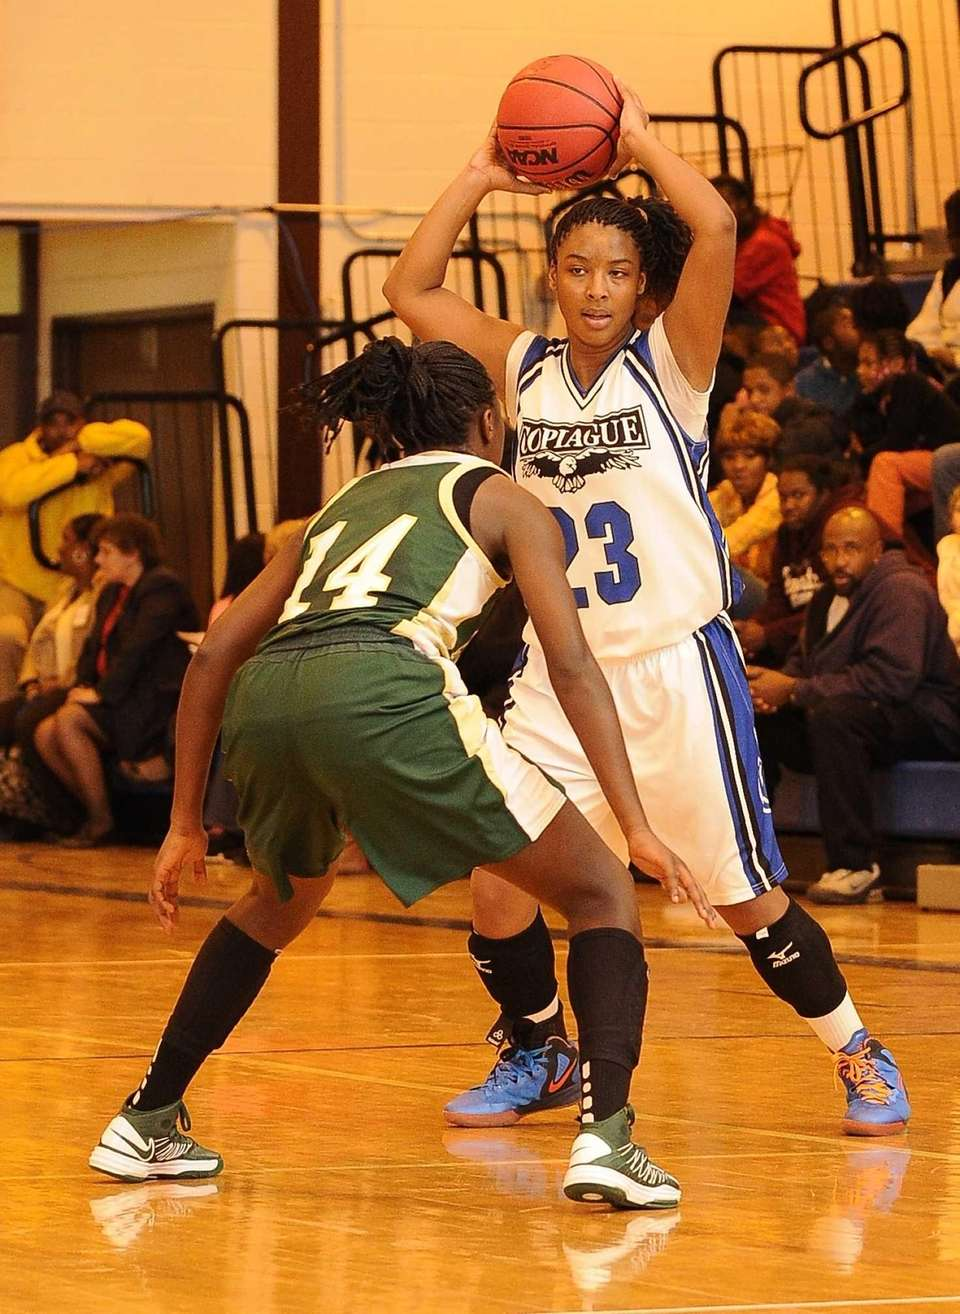 Copiague's I'Asia O'Garro is defended by Longwood's Kiersten